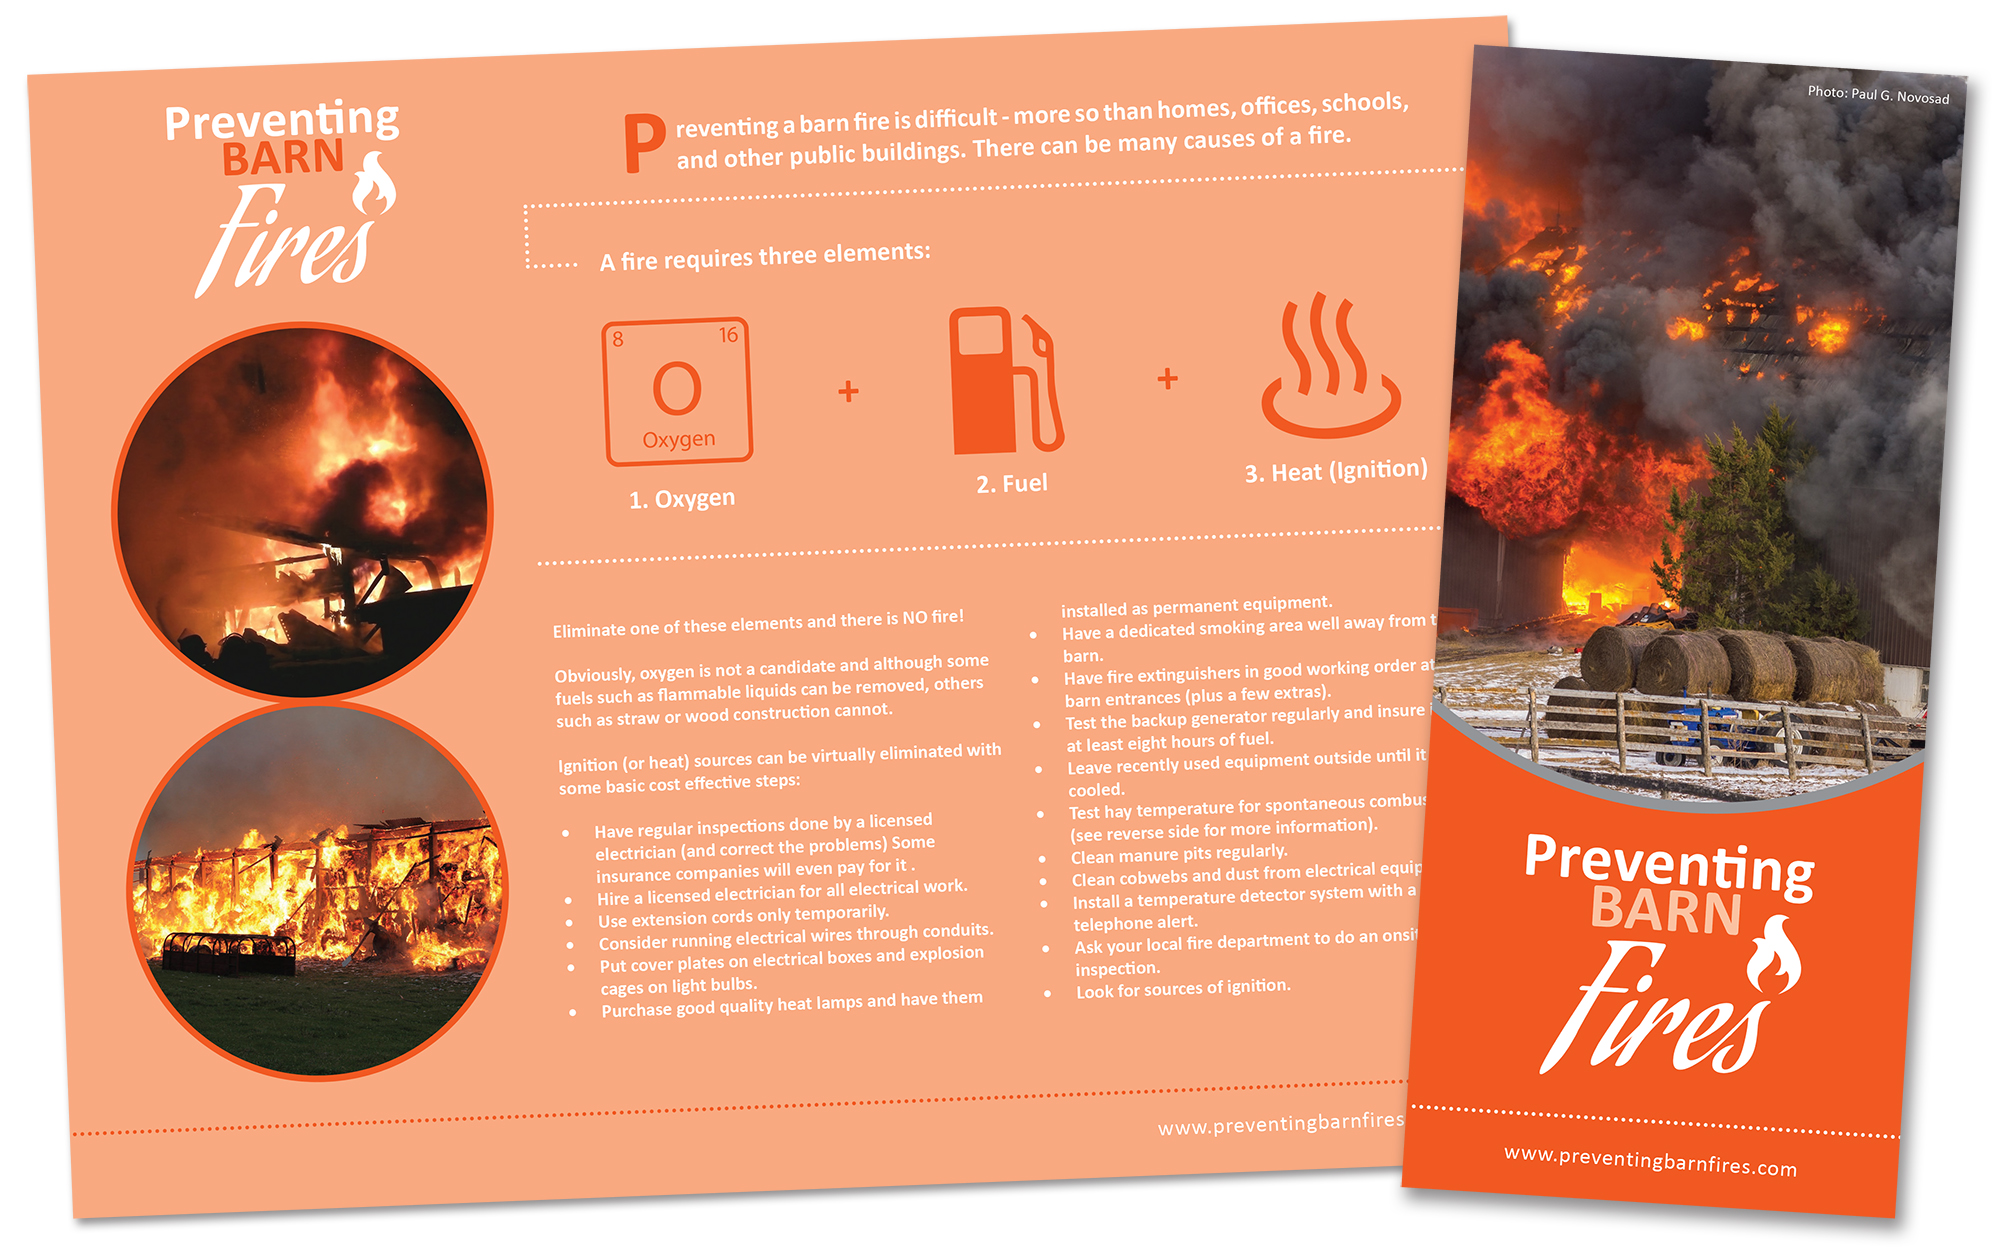 Z-fold brochures (English and French versions)